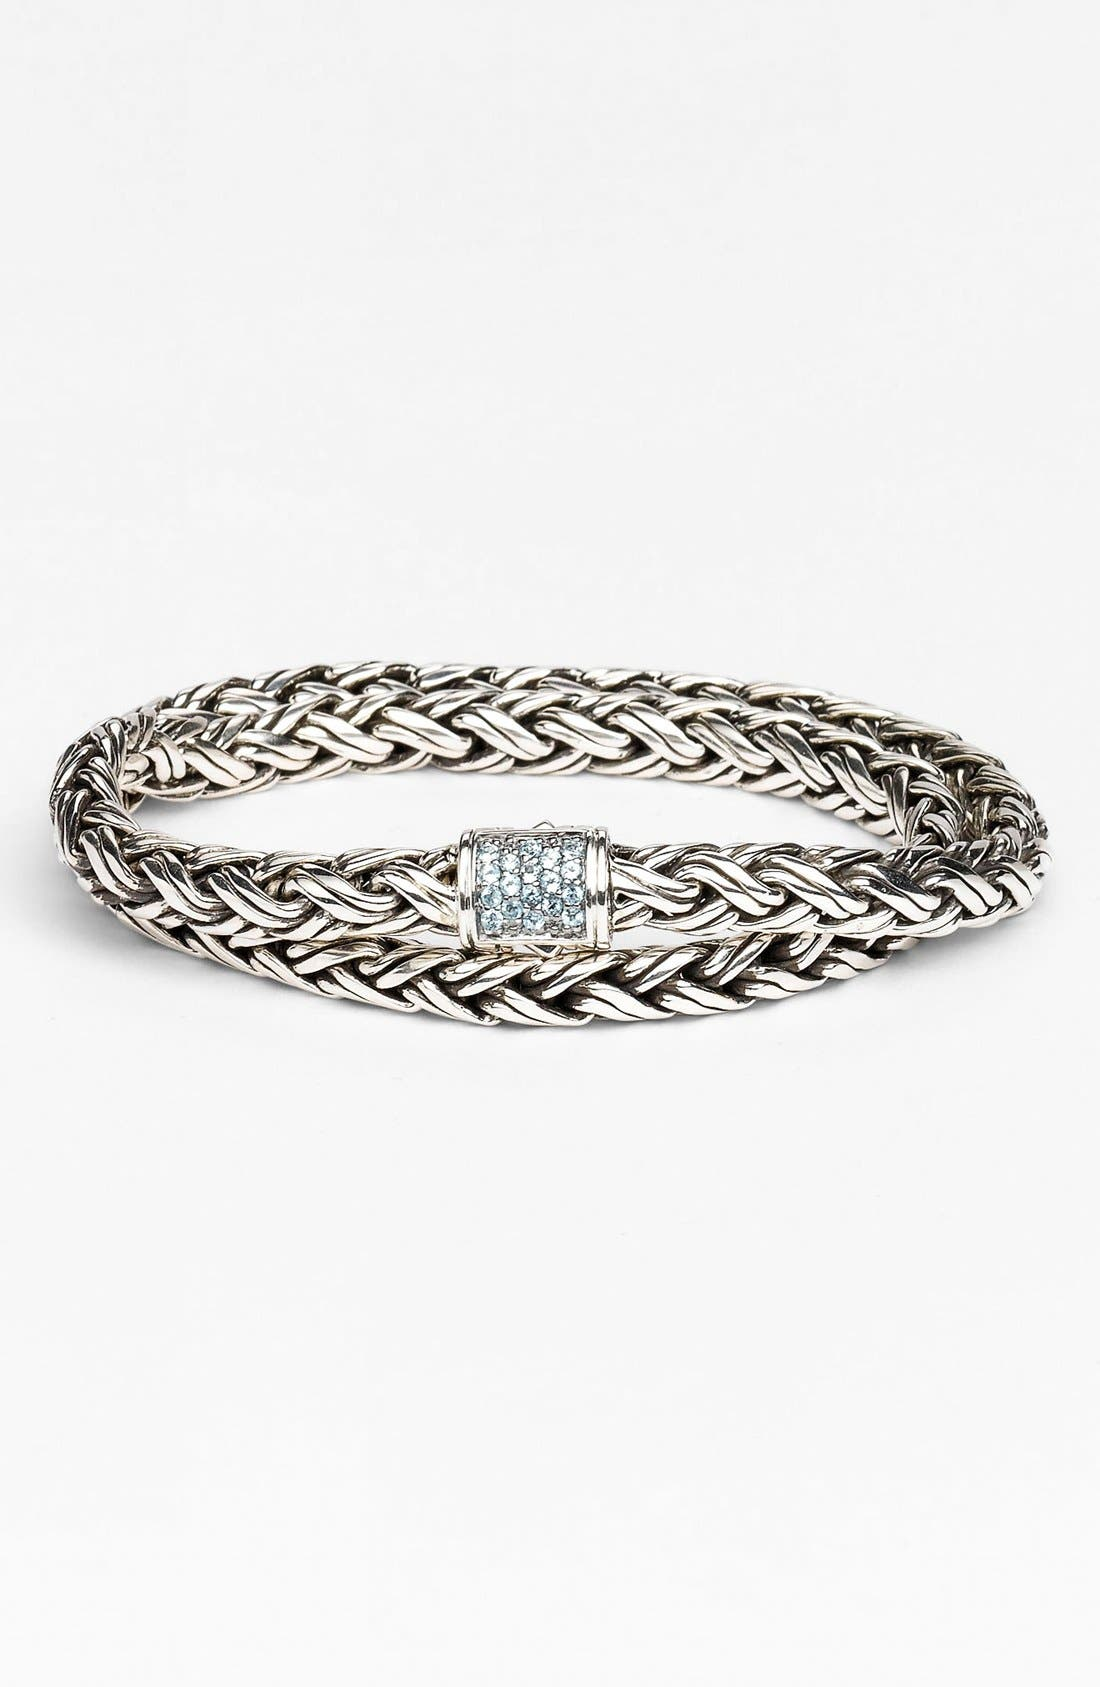 Alternate Image 1 Selected - John Hardy 'Classic Chain - Kepang' Double Wrap Chain Bracelet (Nordstrom Exclusive)